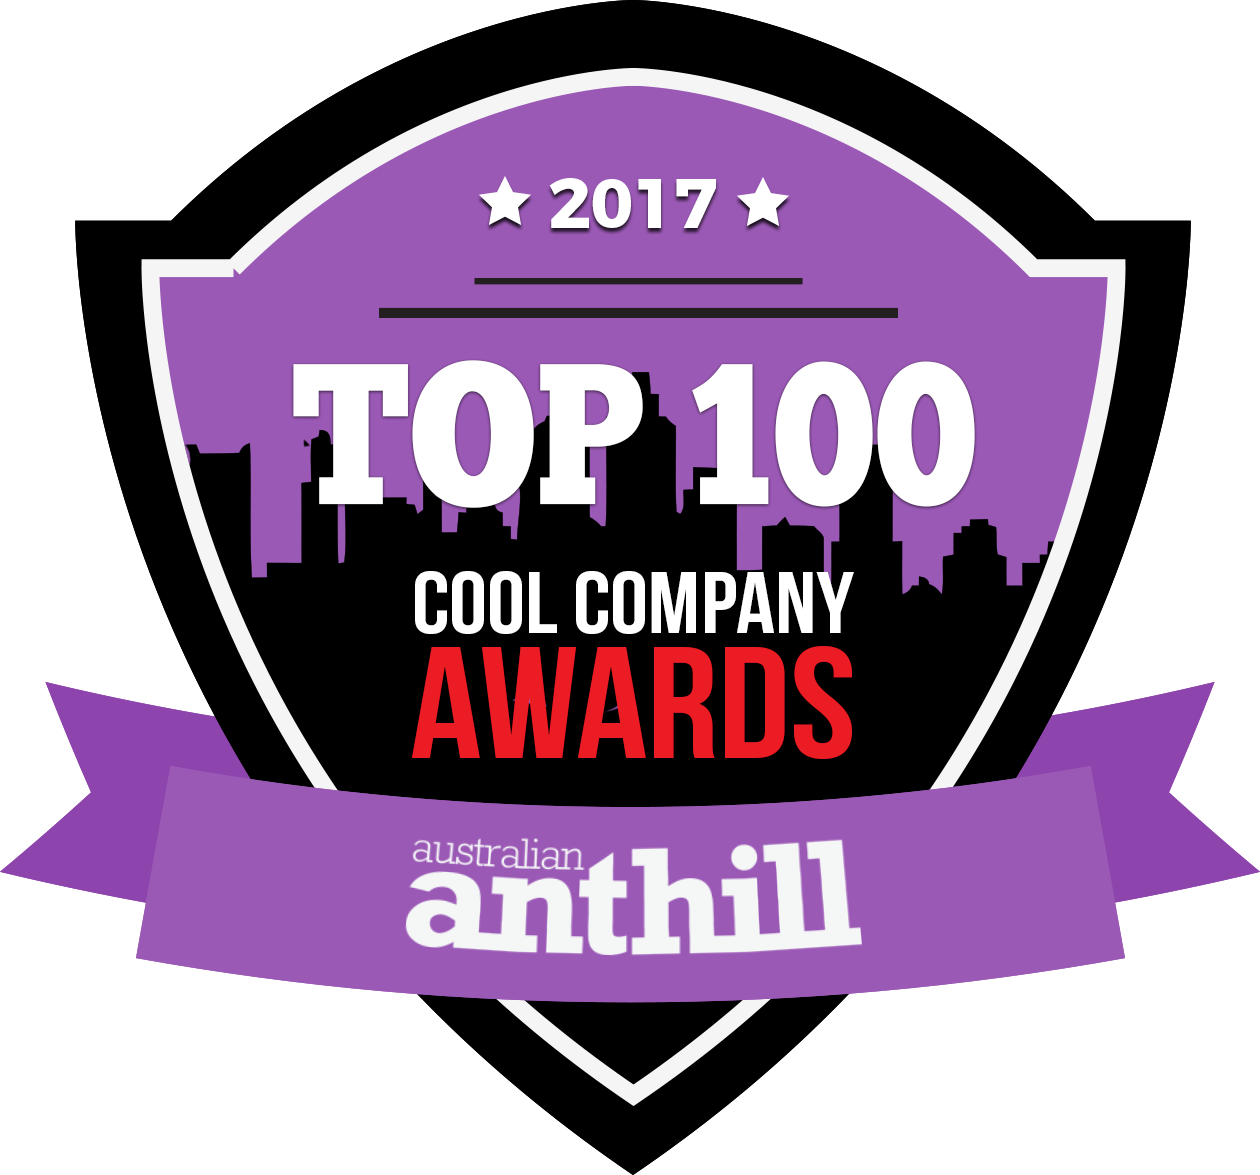 Australian Anithill Top 100 Cool Company Awards